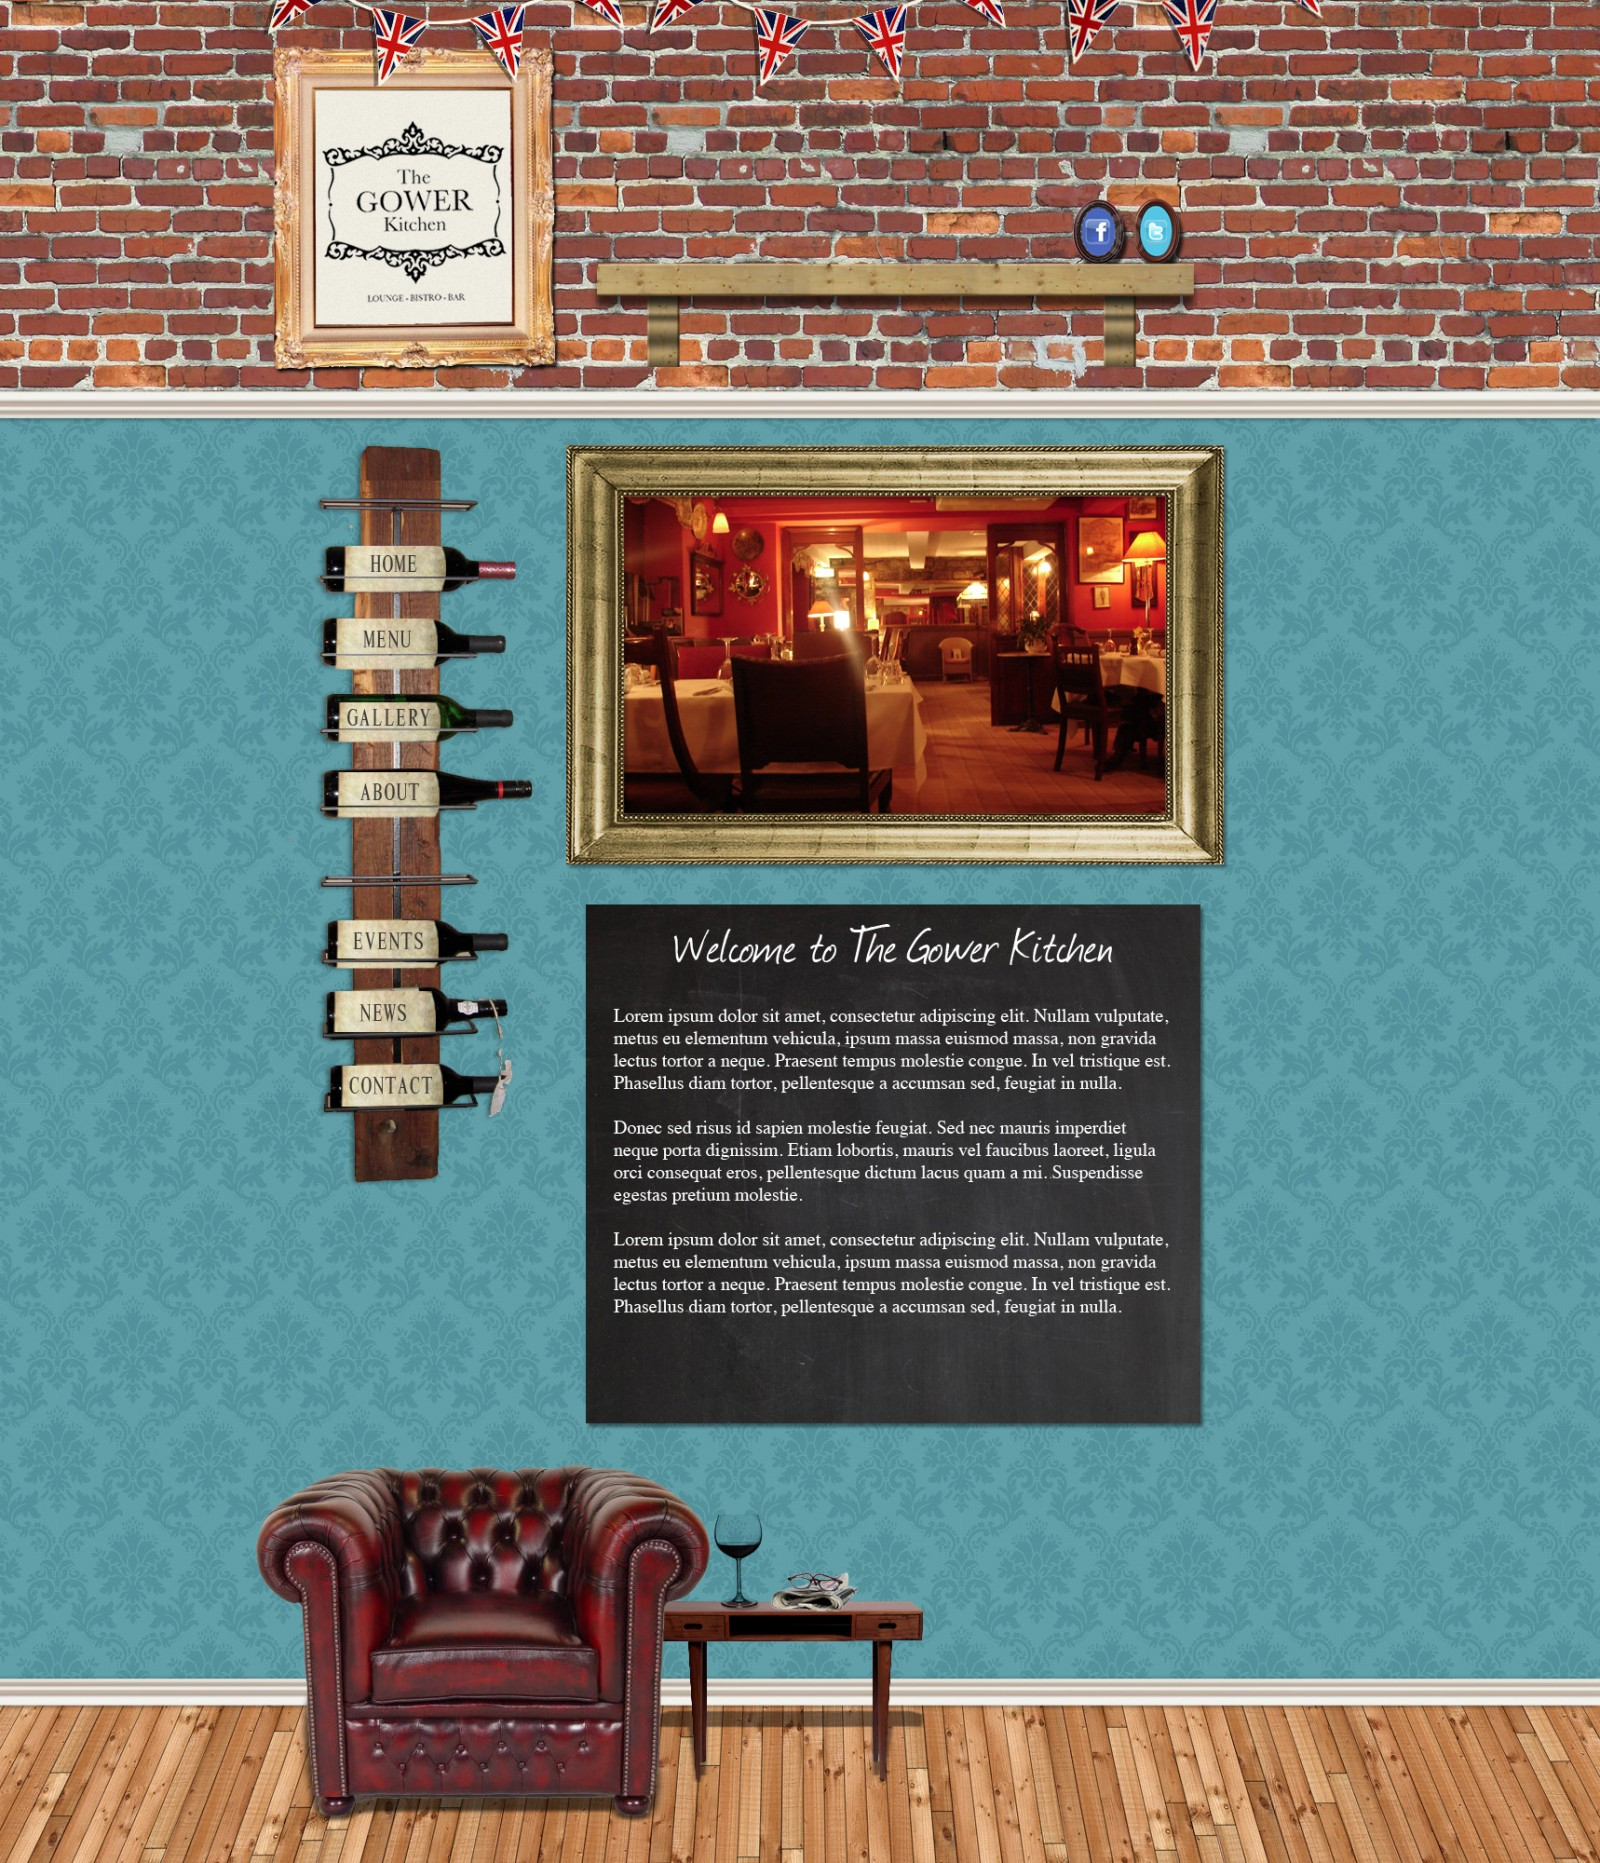 Gower Kitchen Website